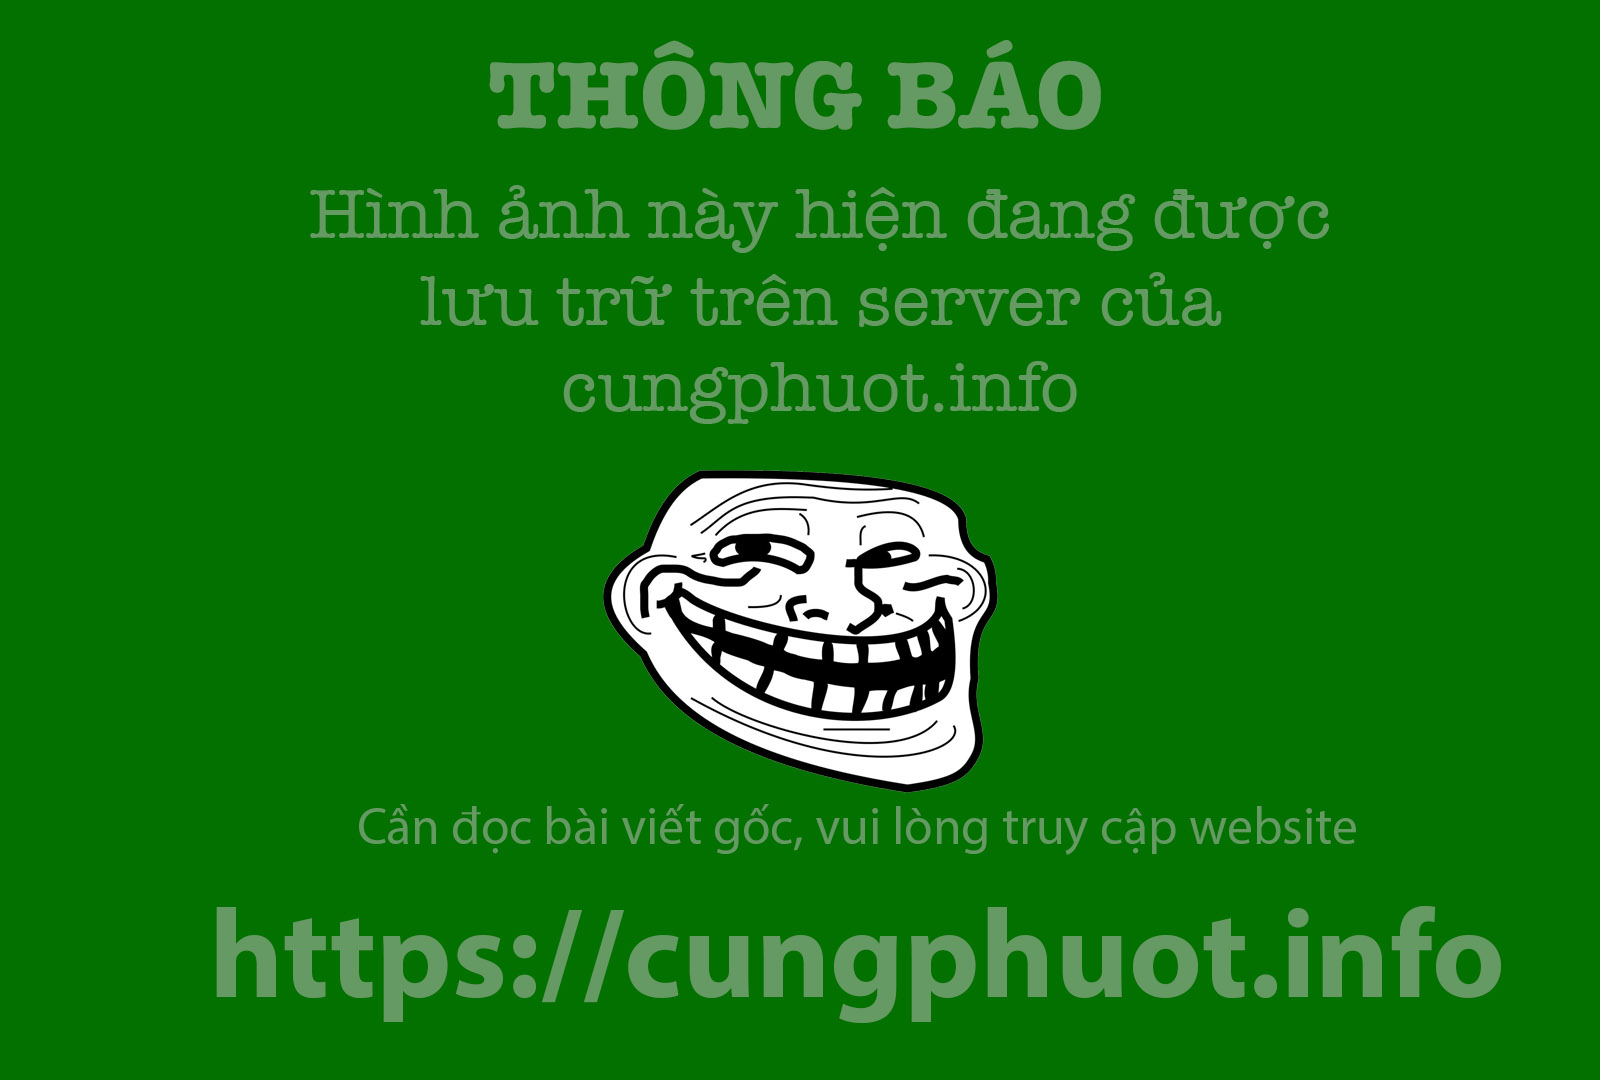 9 cung duong deo hung vi khien tin do du lich muon chinh phuc hinh anh 9